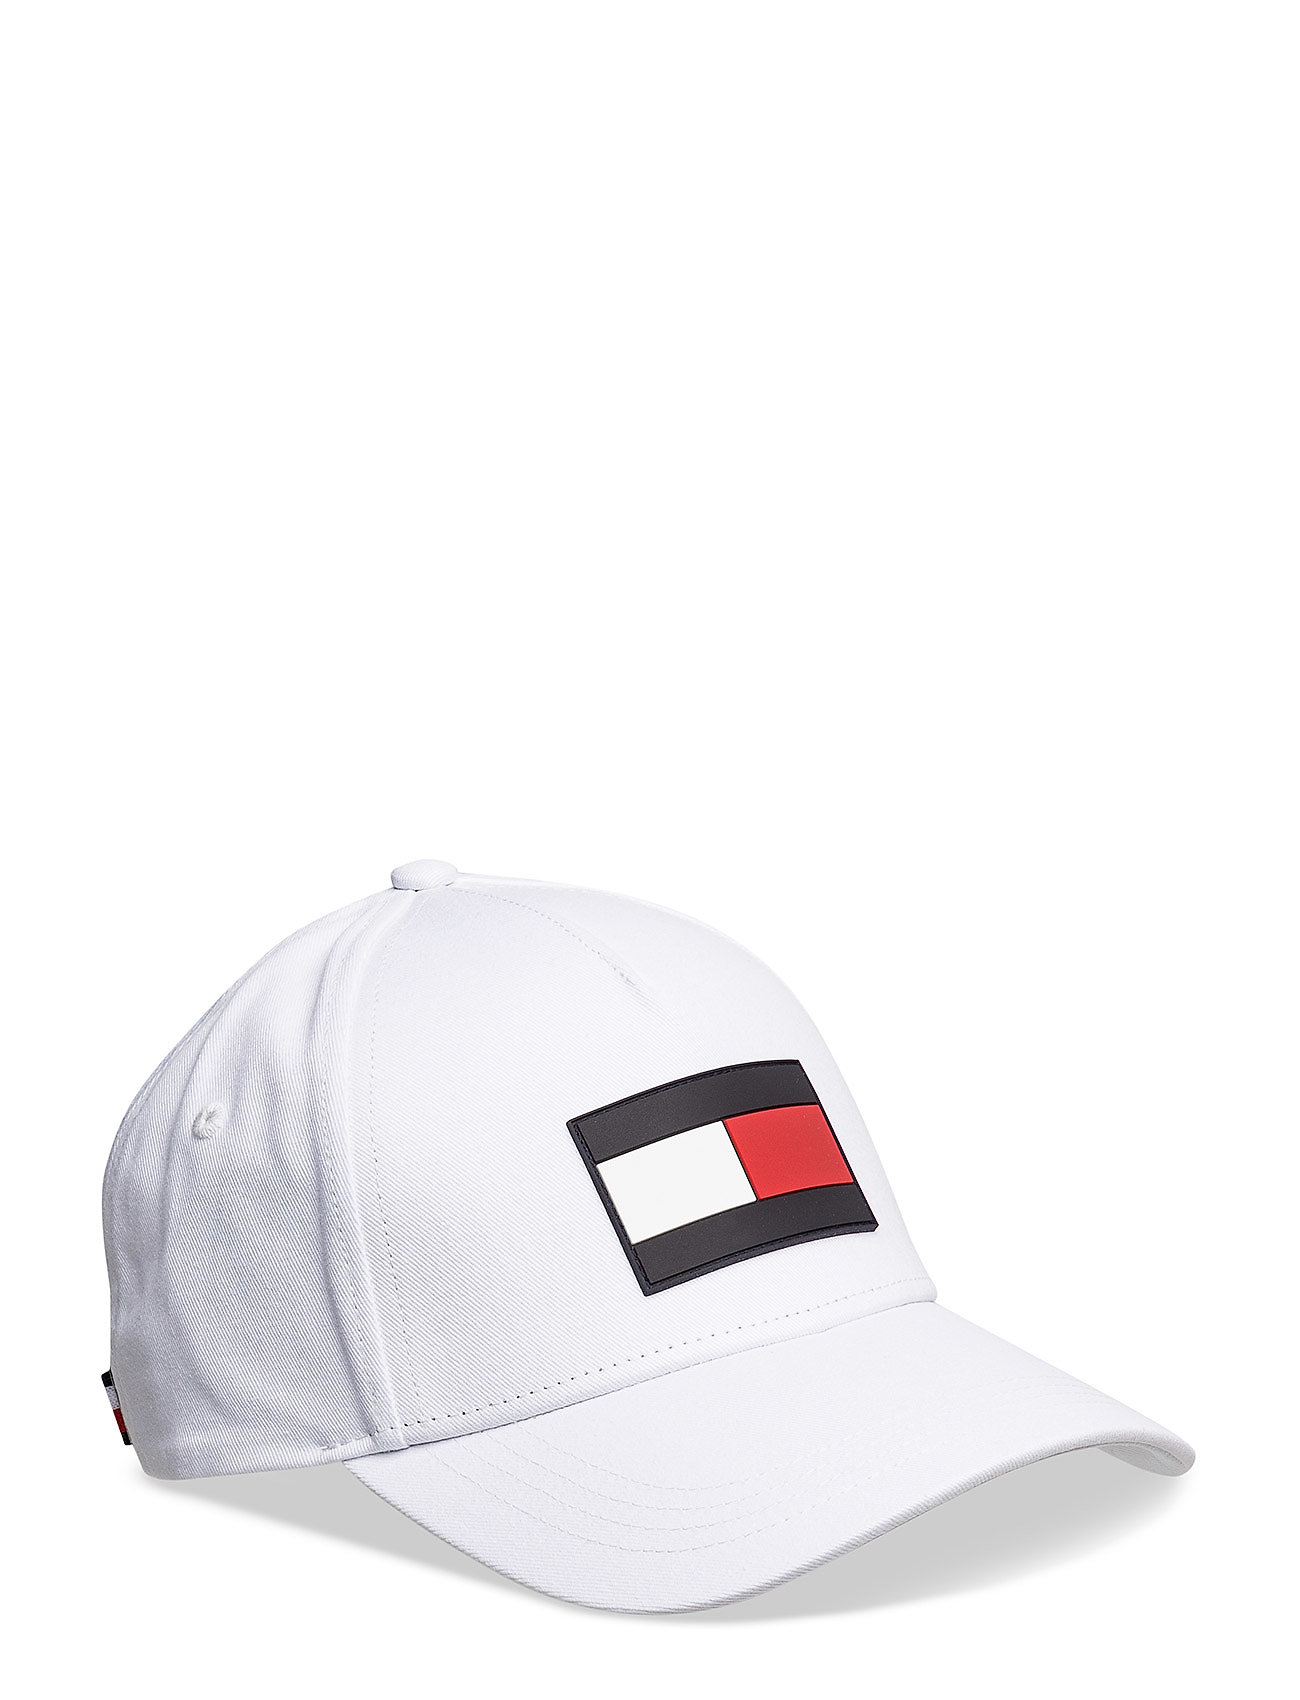 Tommy Hilfiger Laukut Miehet : Th flag cap os bright white  tommy